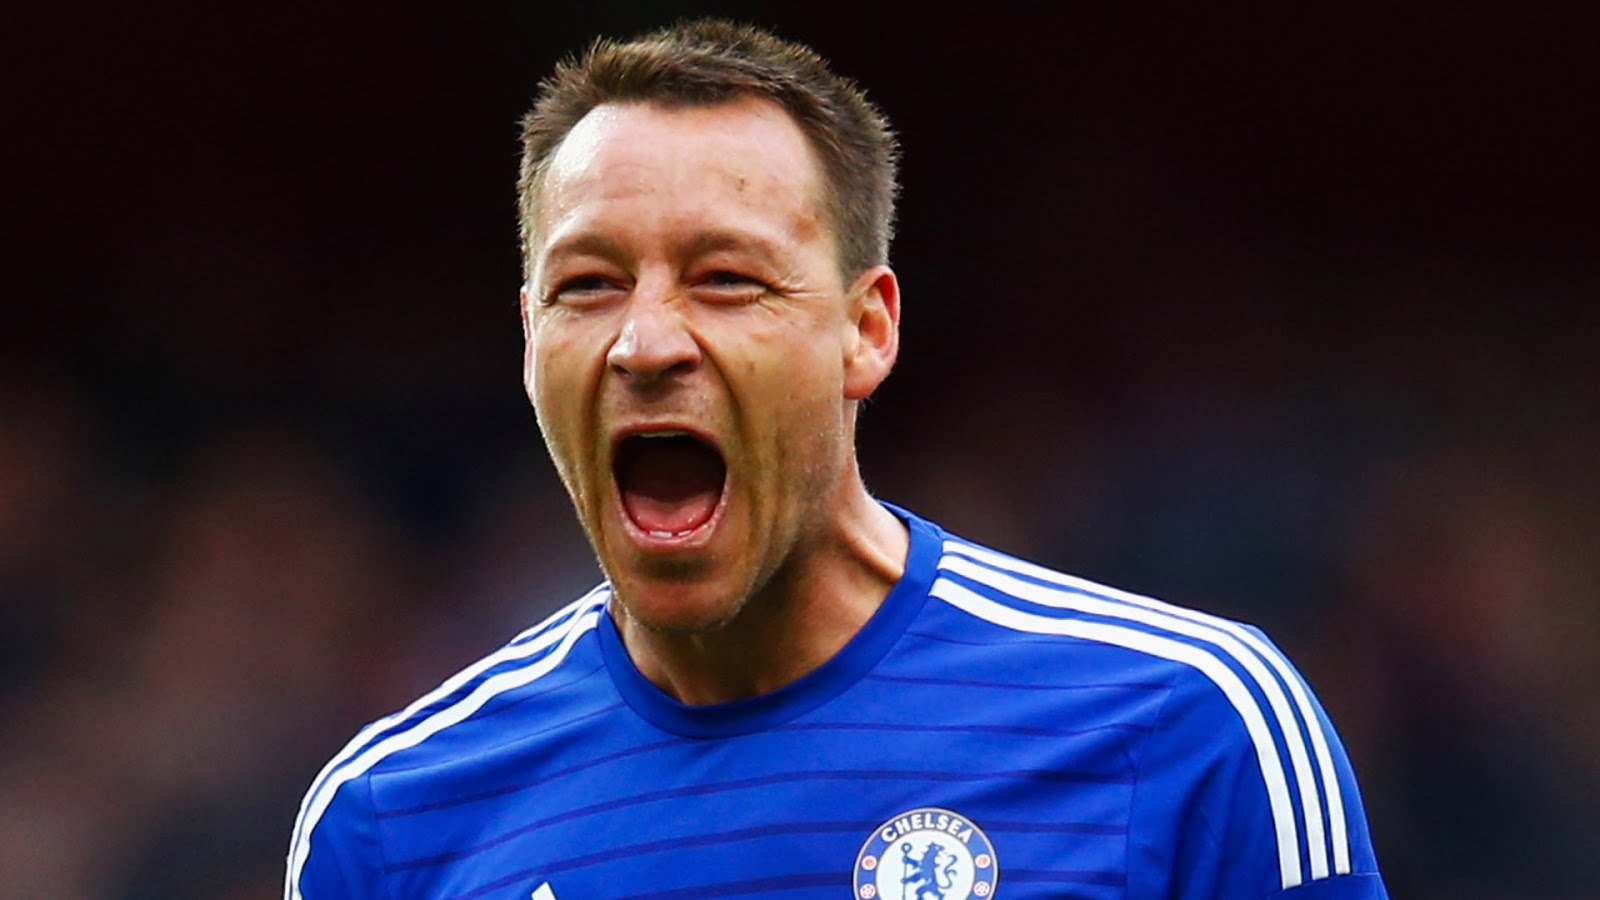 John Terry Sends Heartfelt Thank You Letter To Chelsea Fans